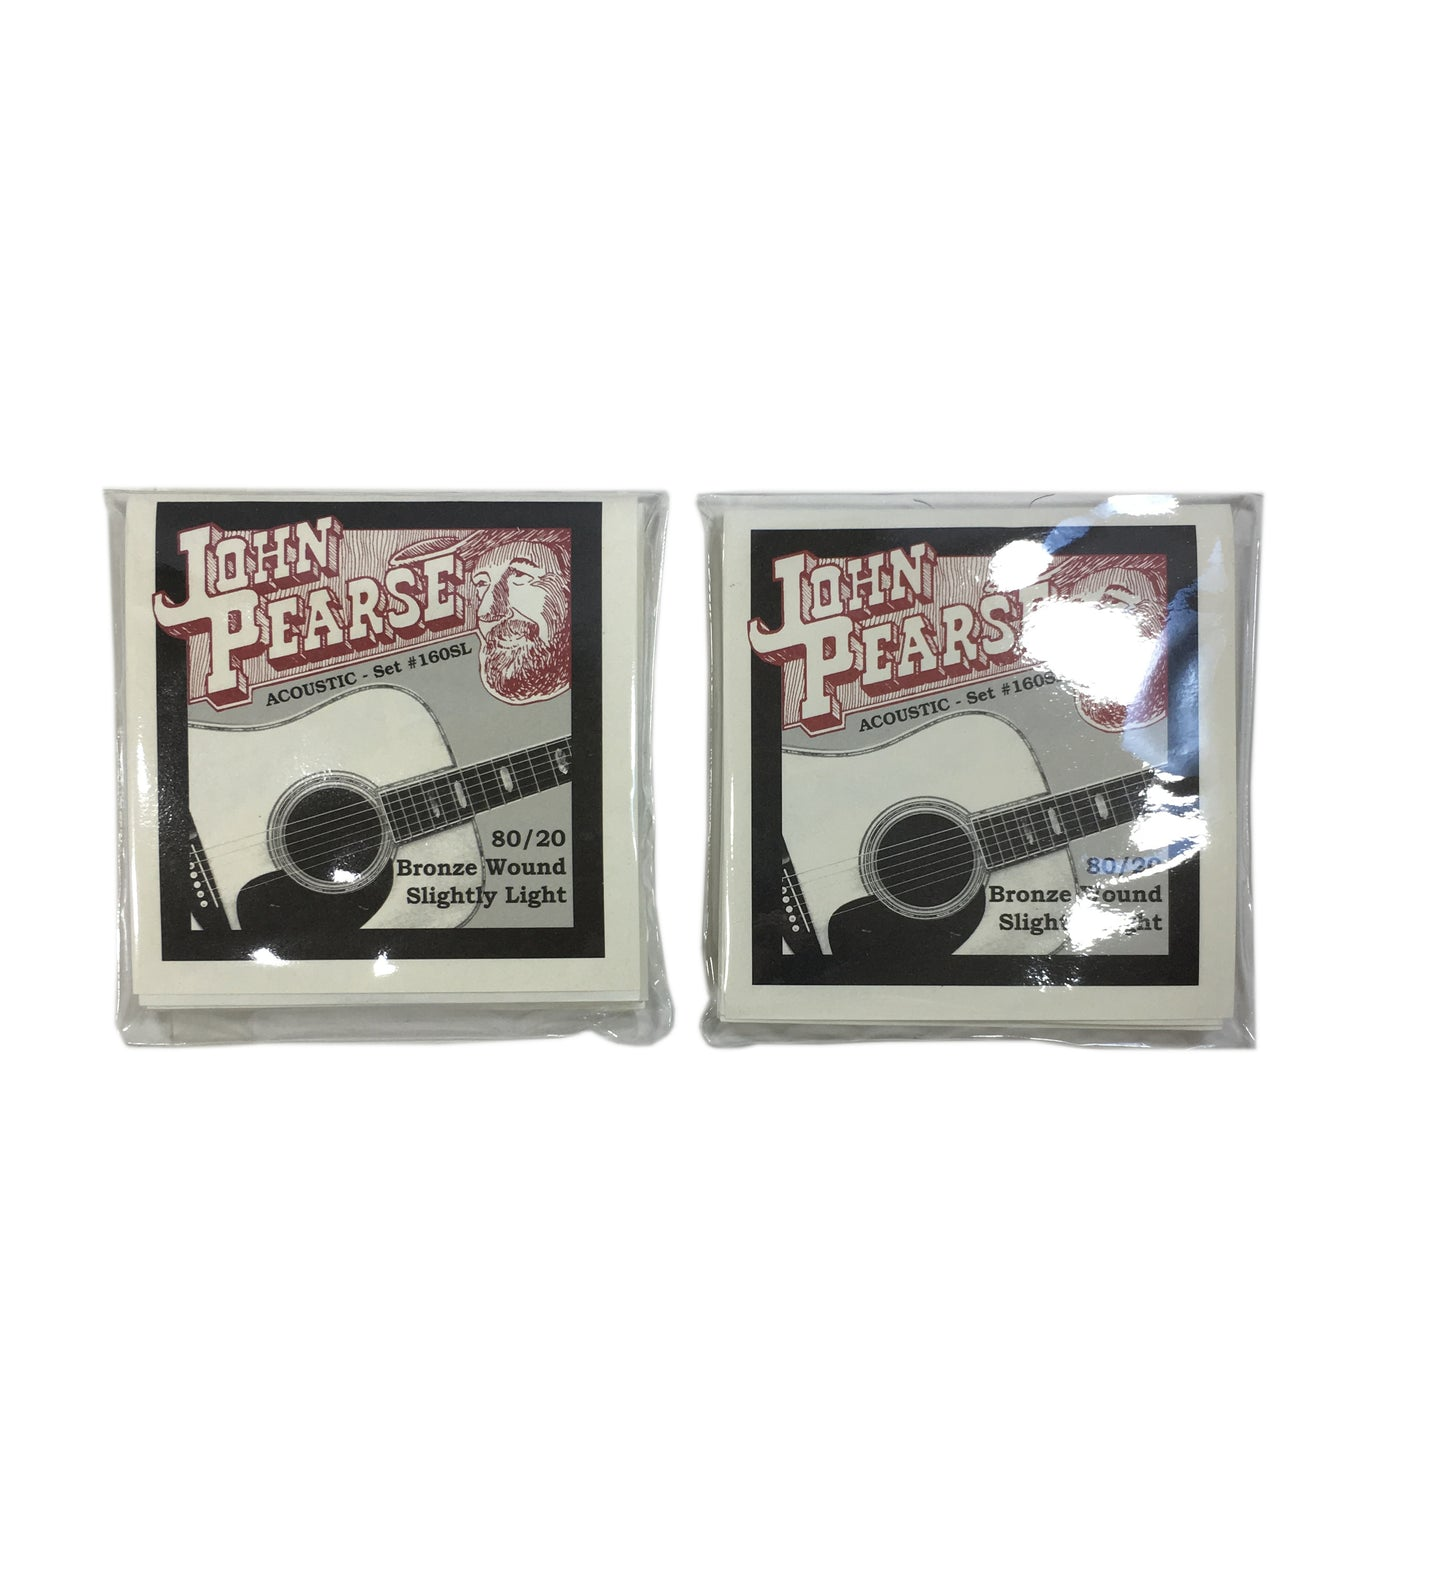 John Pearse Guitar Strings 2-Pack Acoustic 80/20 Bronze Wound Slightly Light #160SL.